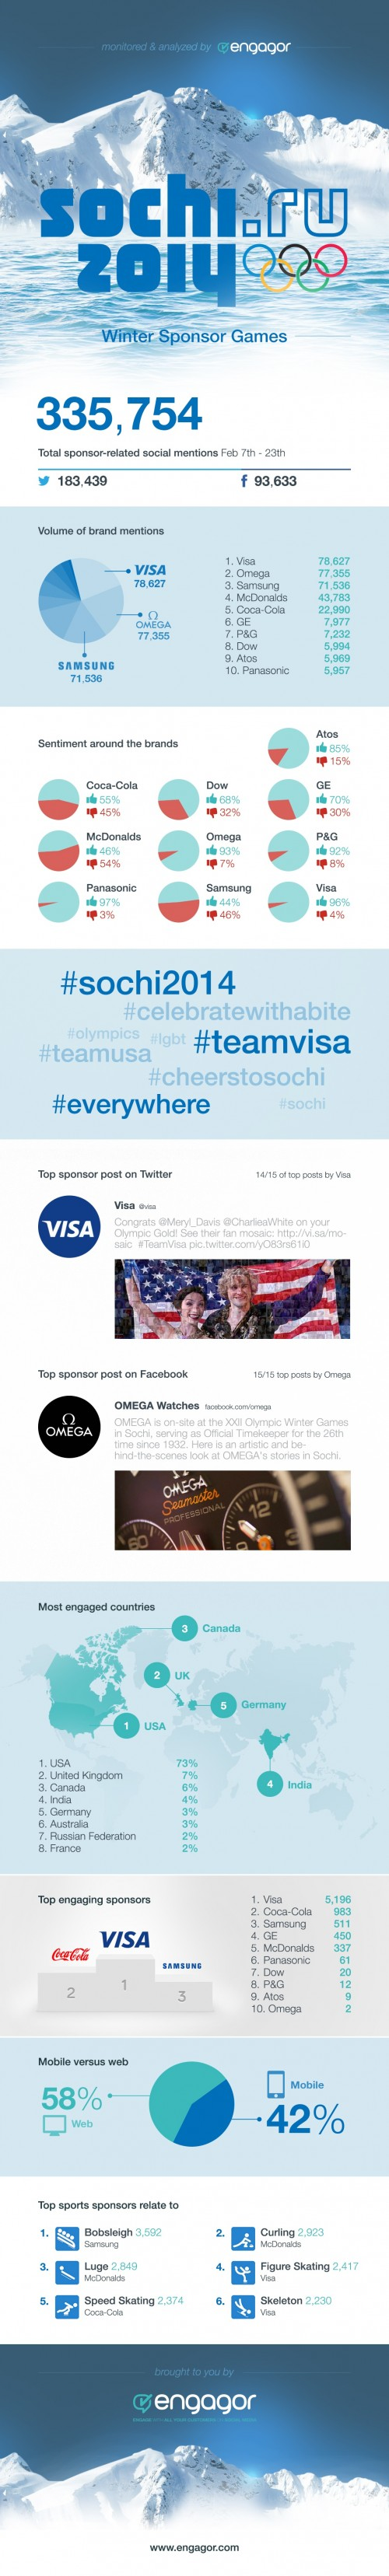 Sochi-2014-olympics-social-media-winners